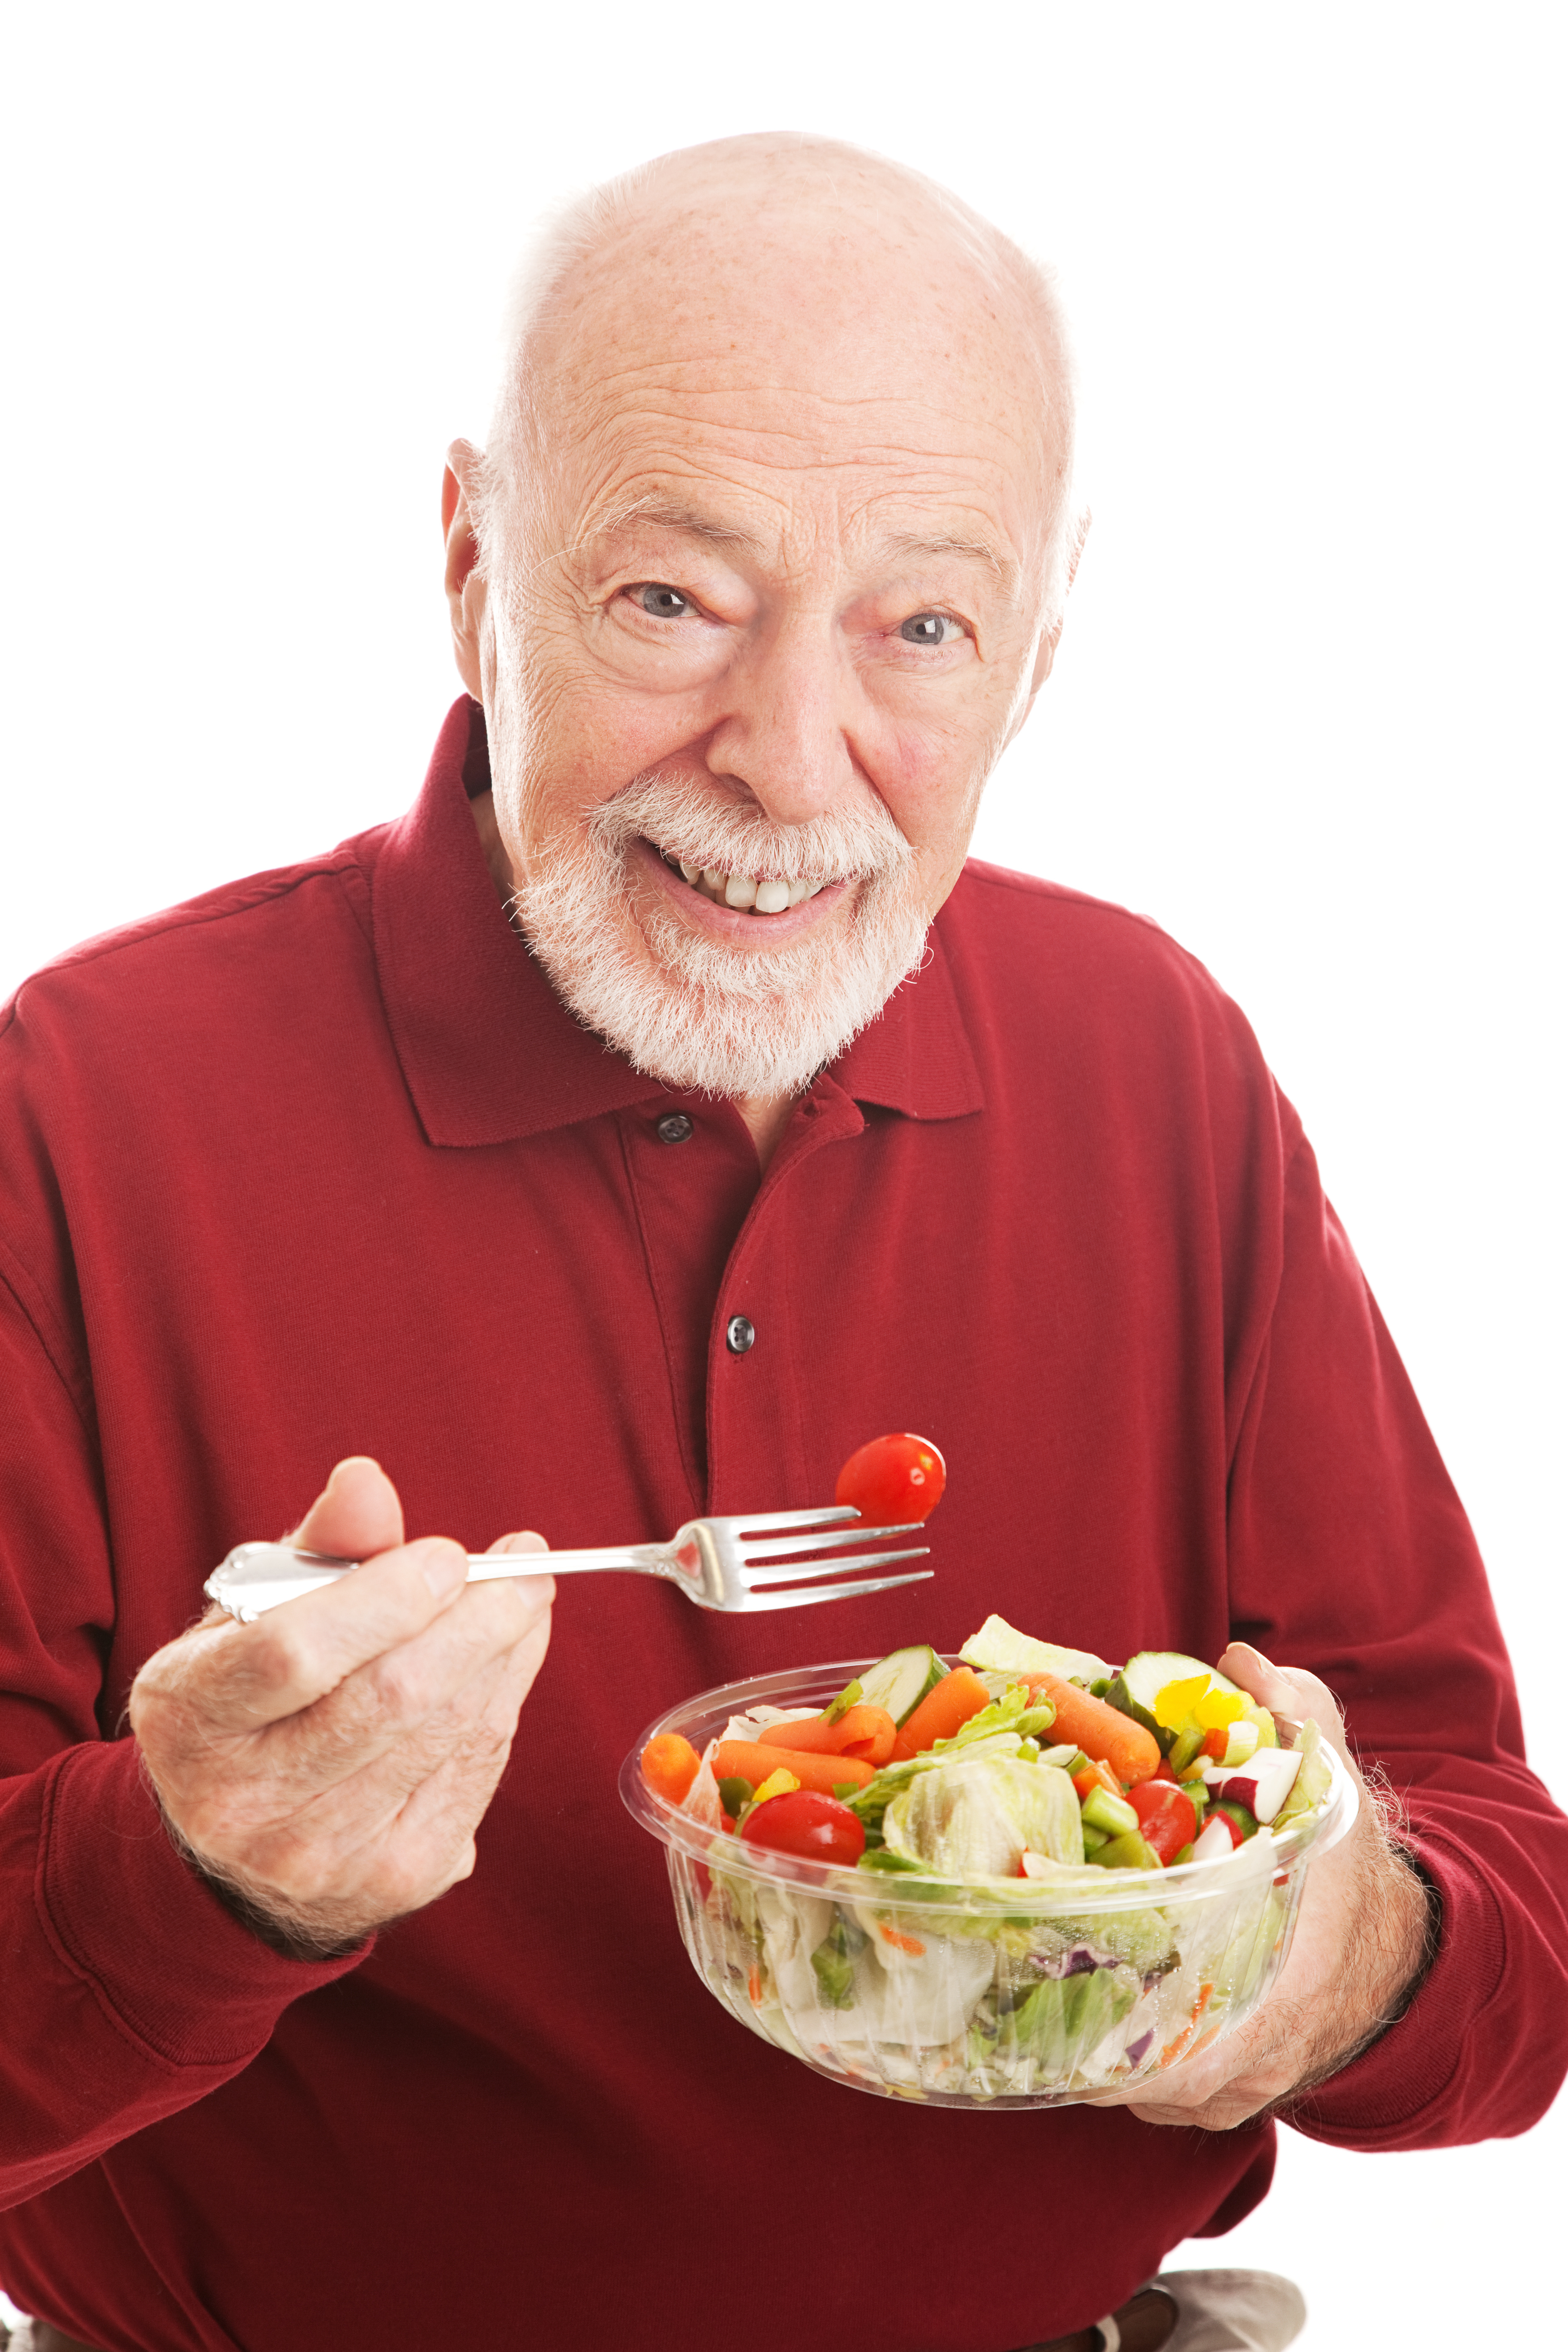 You mean? Healthy eating for older adults